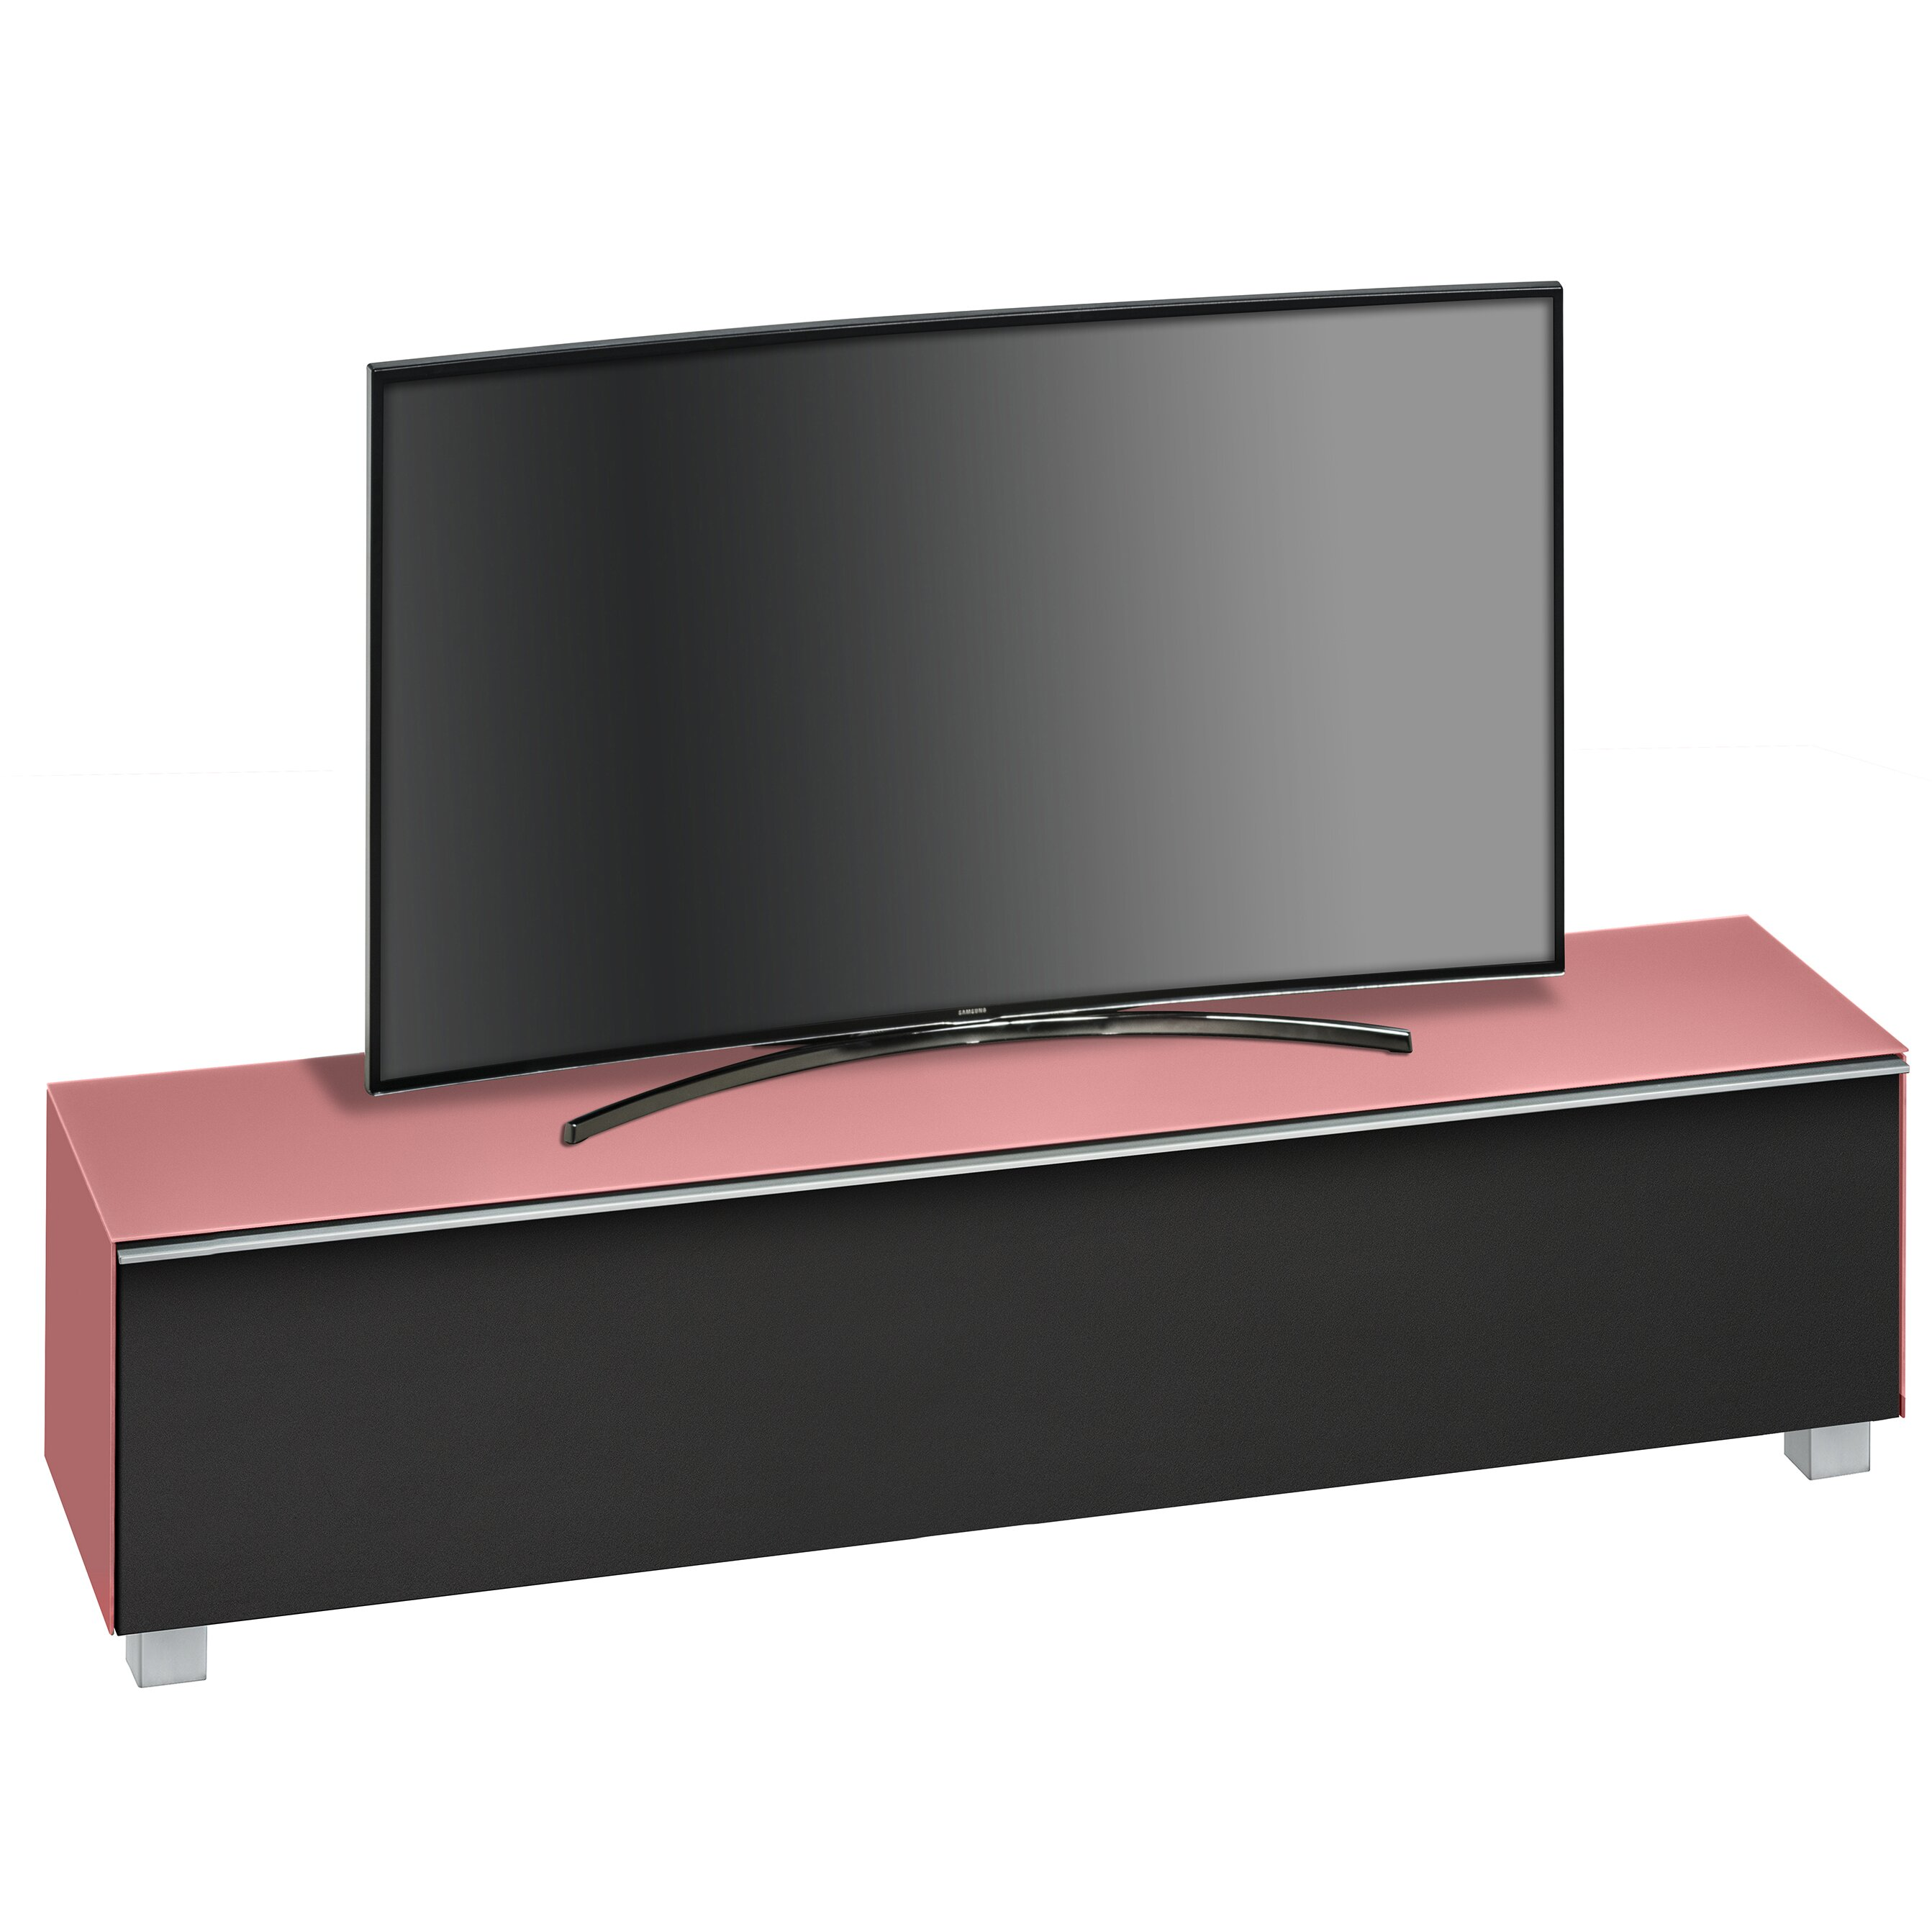 maja m bel tv lowboard soundconcept 180 cm bewertungen. Black Bedroom Furniture Sets. Home Design Ideas